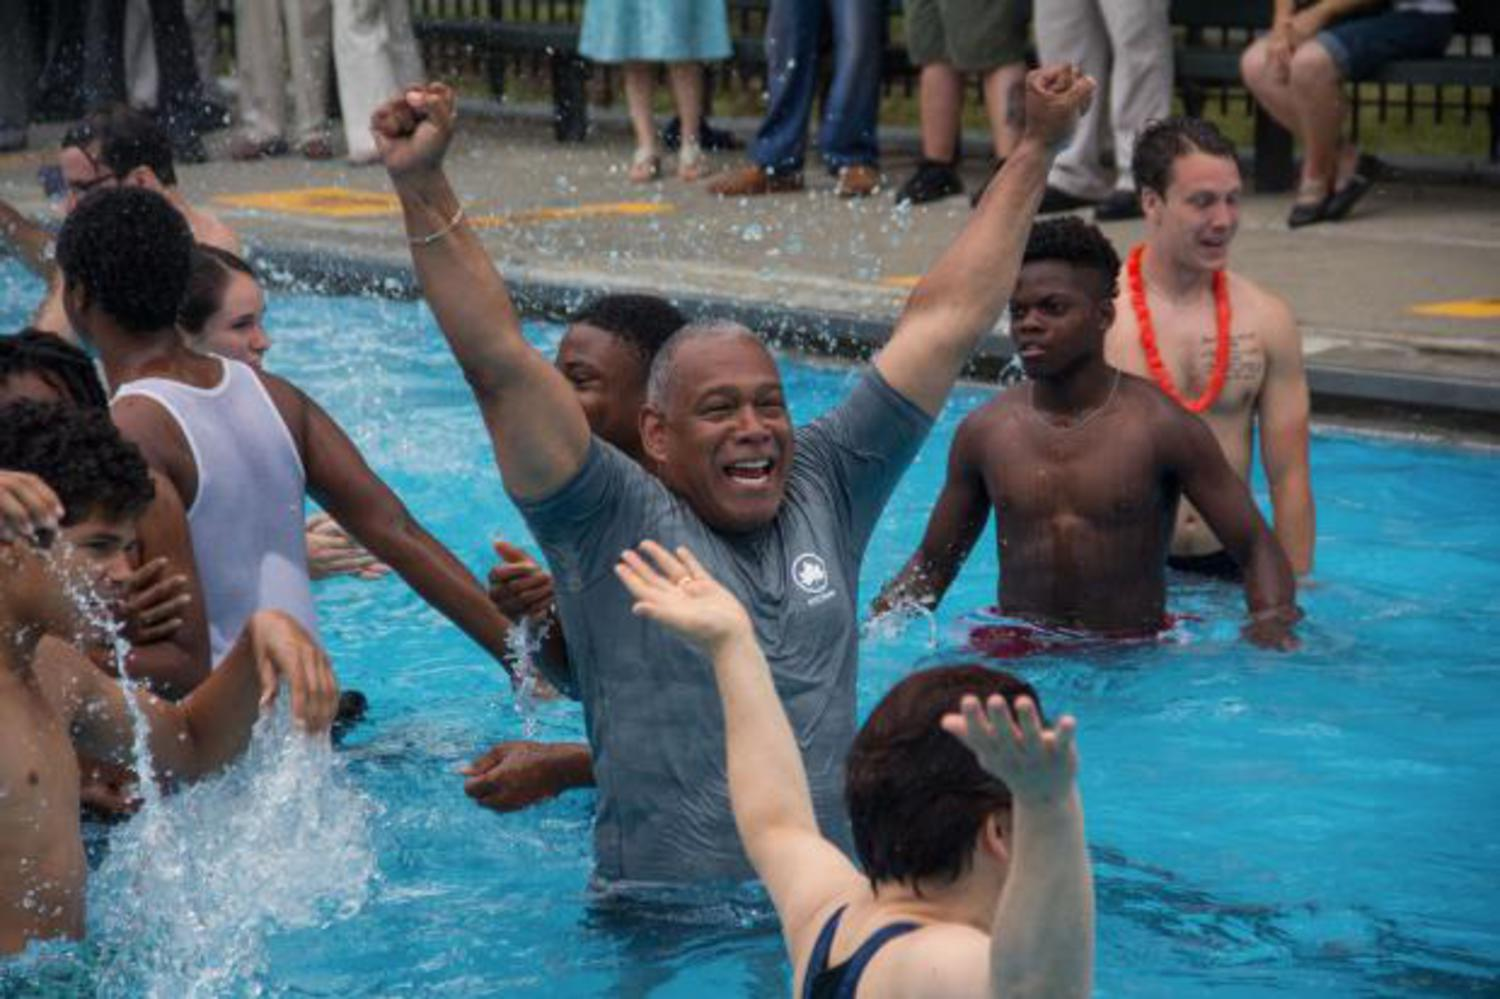 Parks Commissioner Mitchell Silver officially kicked off the opening of the city's outdoor public pools on Tuesday, June 28, 2016, by taking a dip at Faber Pool.